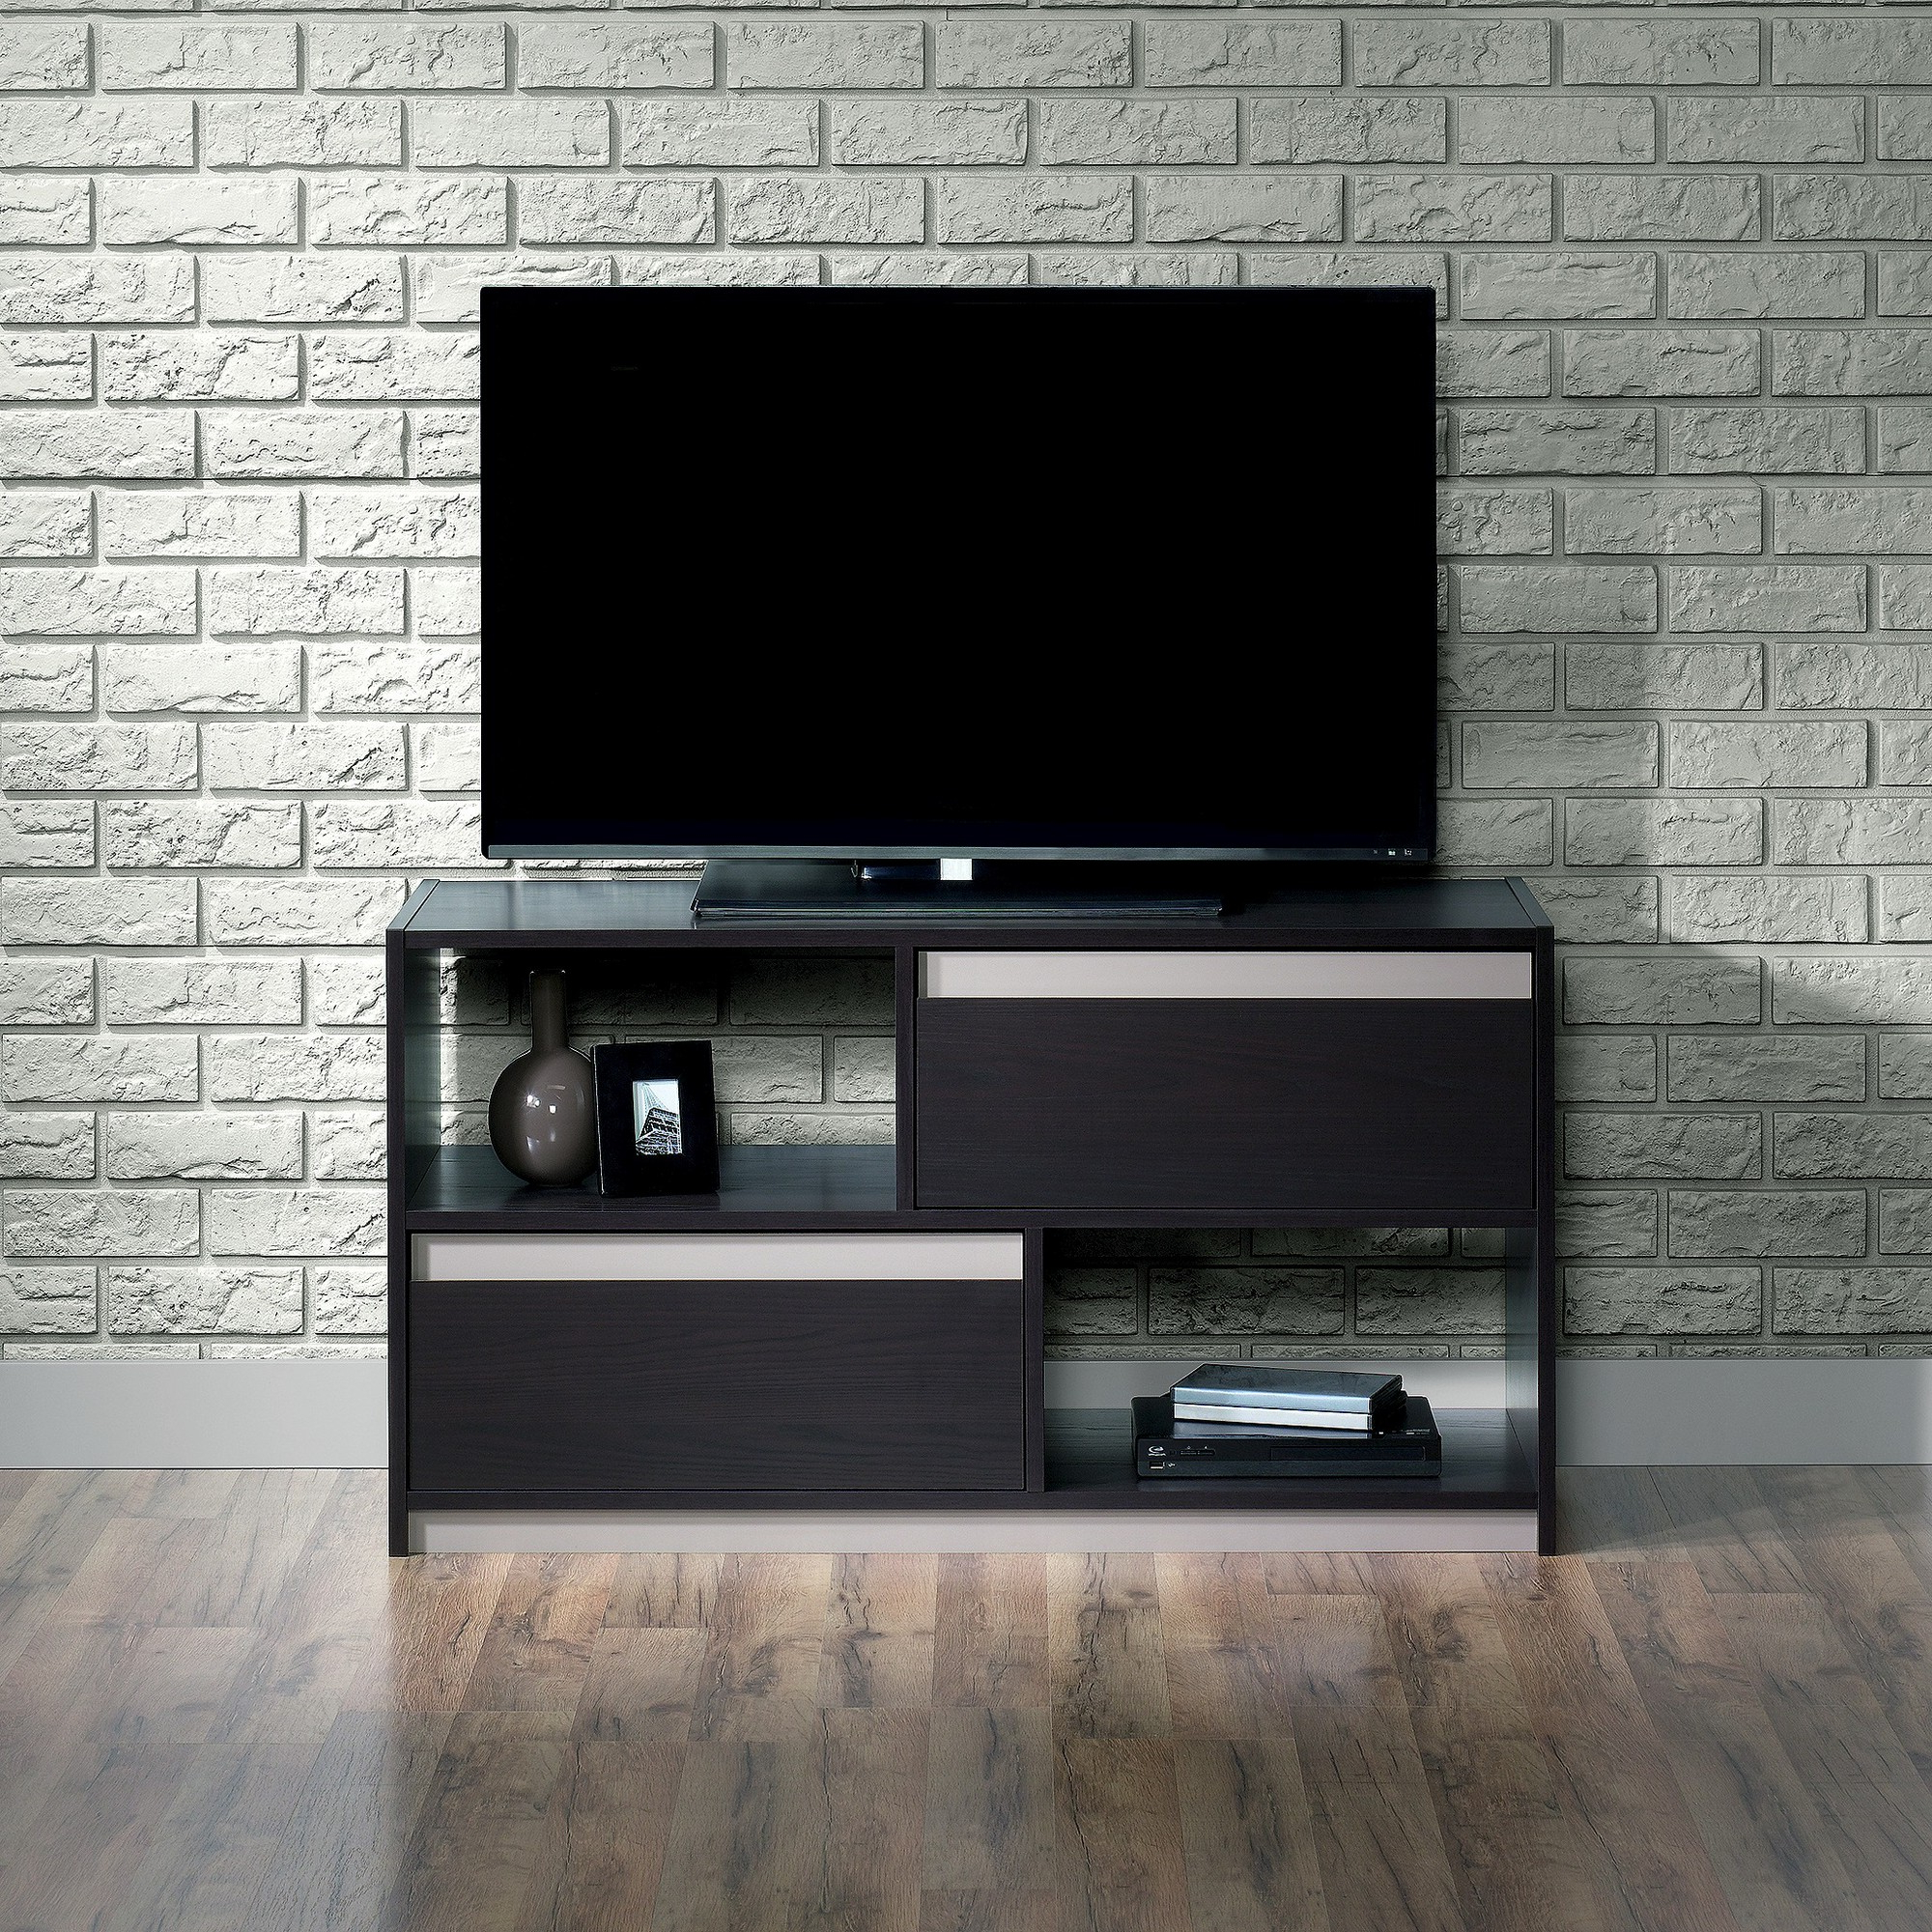 "Square1 Tv Stand With Reversible Accents 42"" (Fits Up To 47 Pertaining To Maddy 60 Inch Tv Stands (Gallery 10 of 20)"